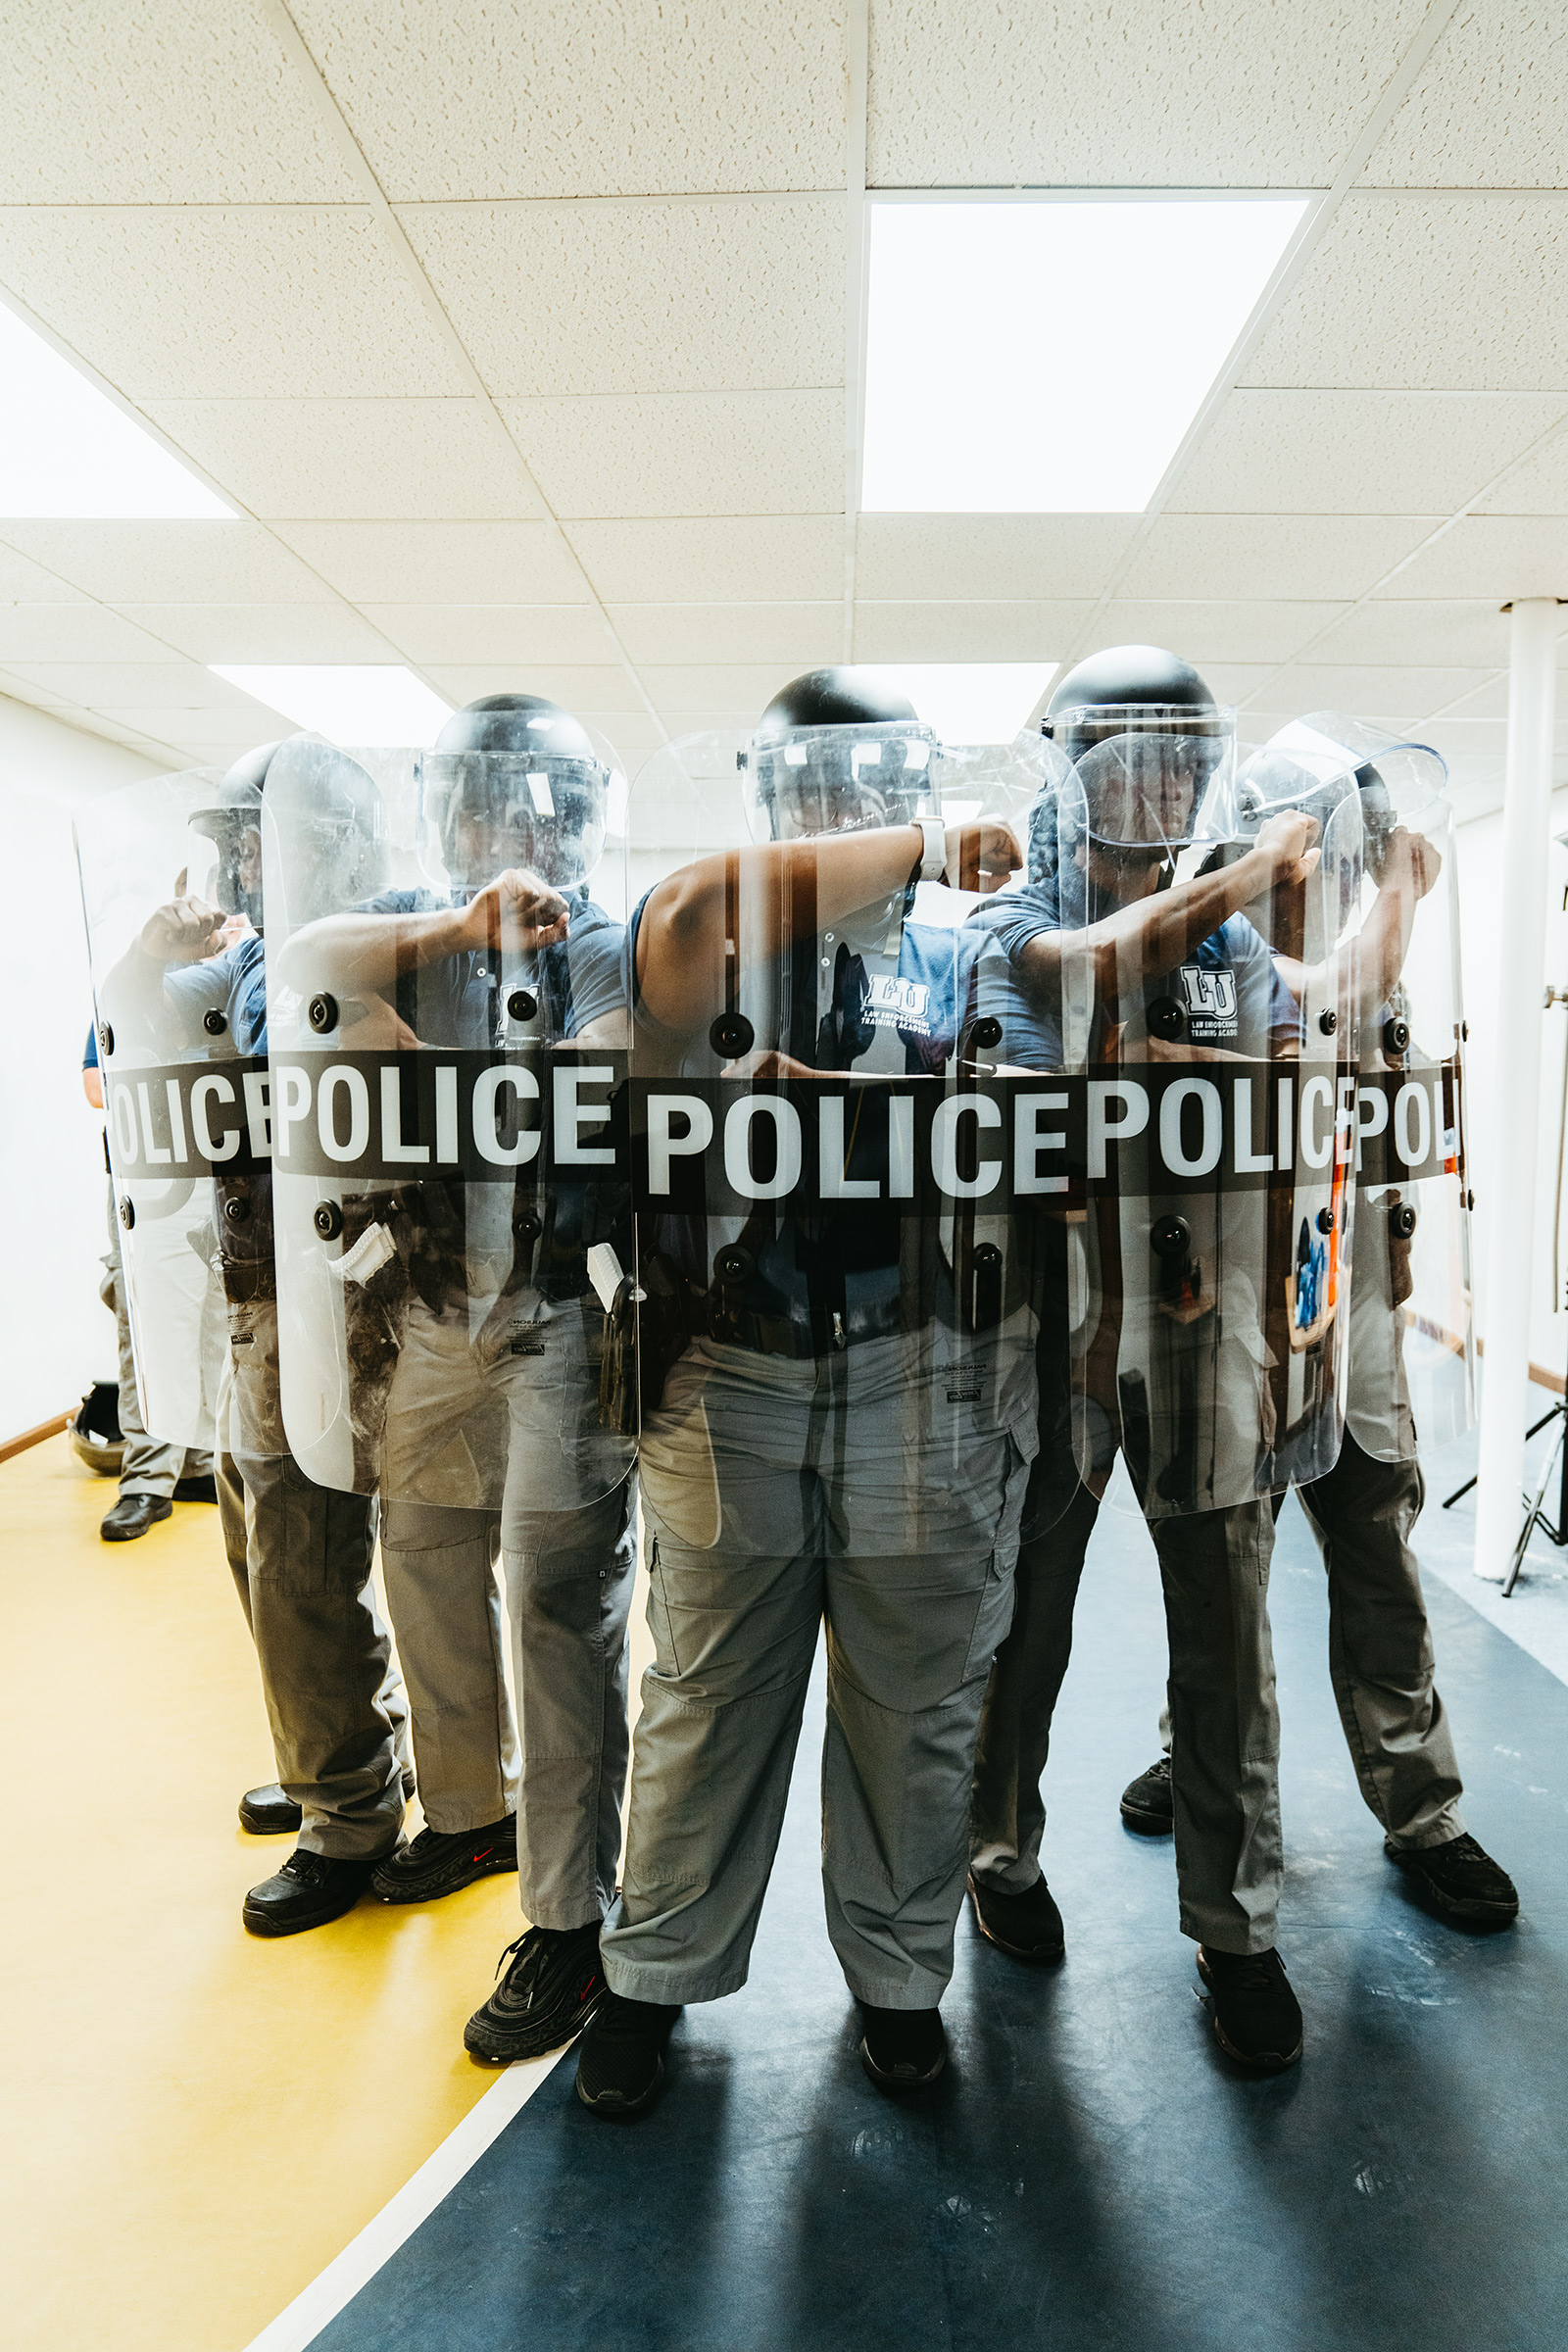 Students in tactical training at the Lincoln University Police Academy in Jefferson City, Mo., on March 12